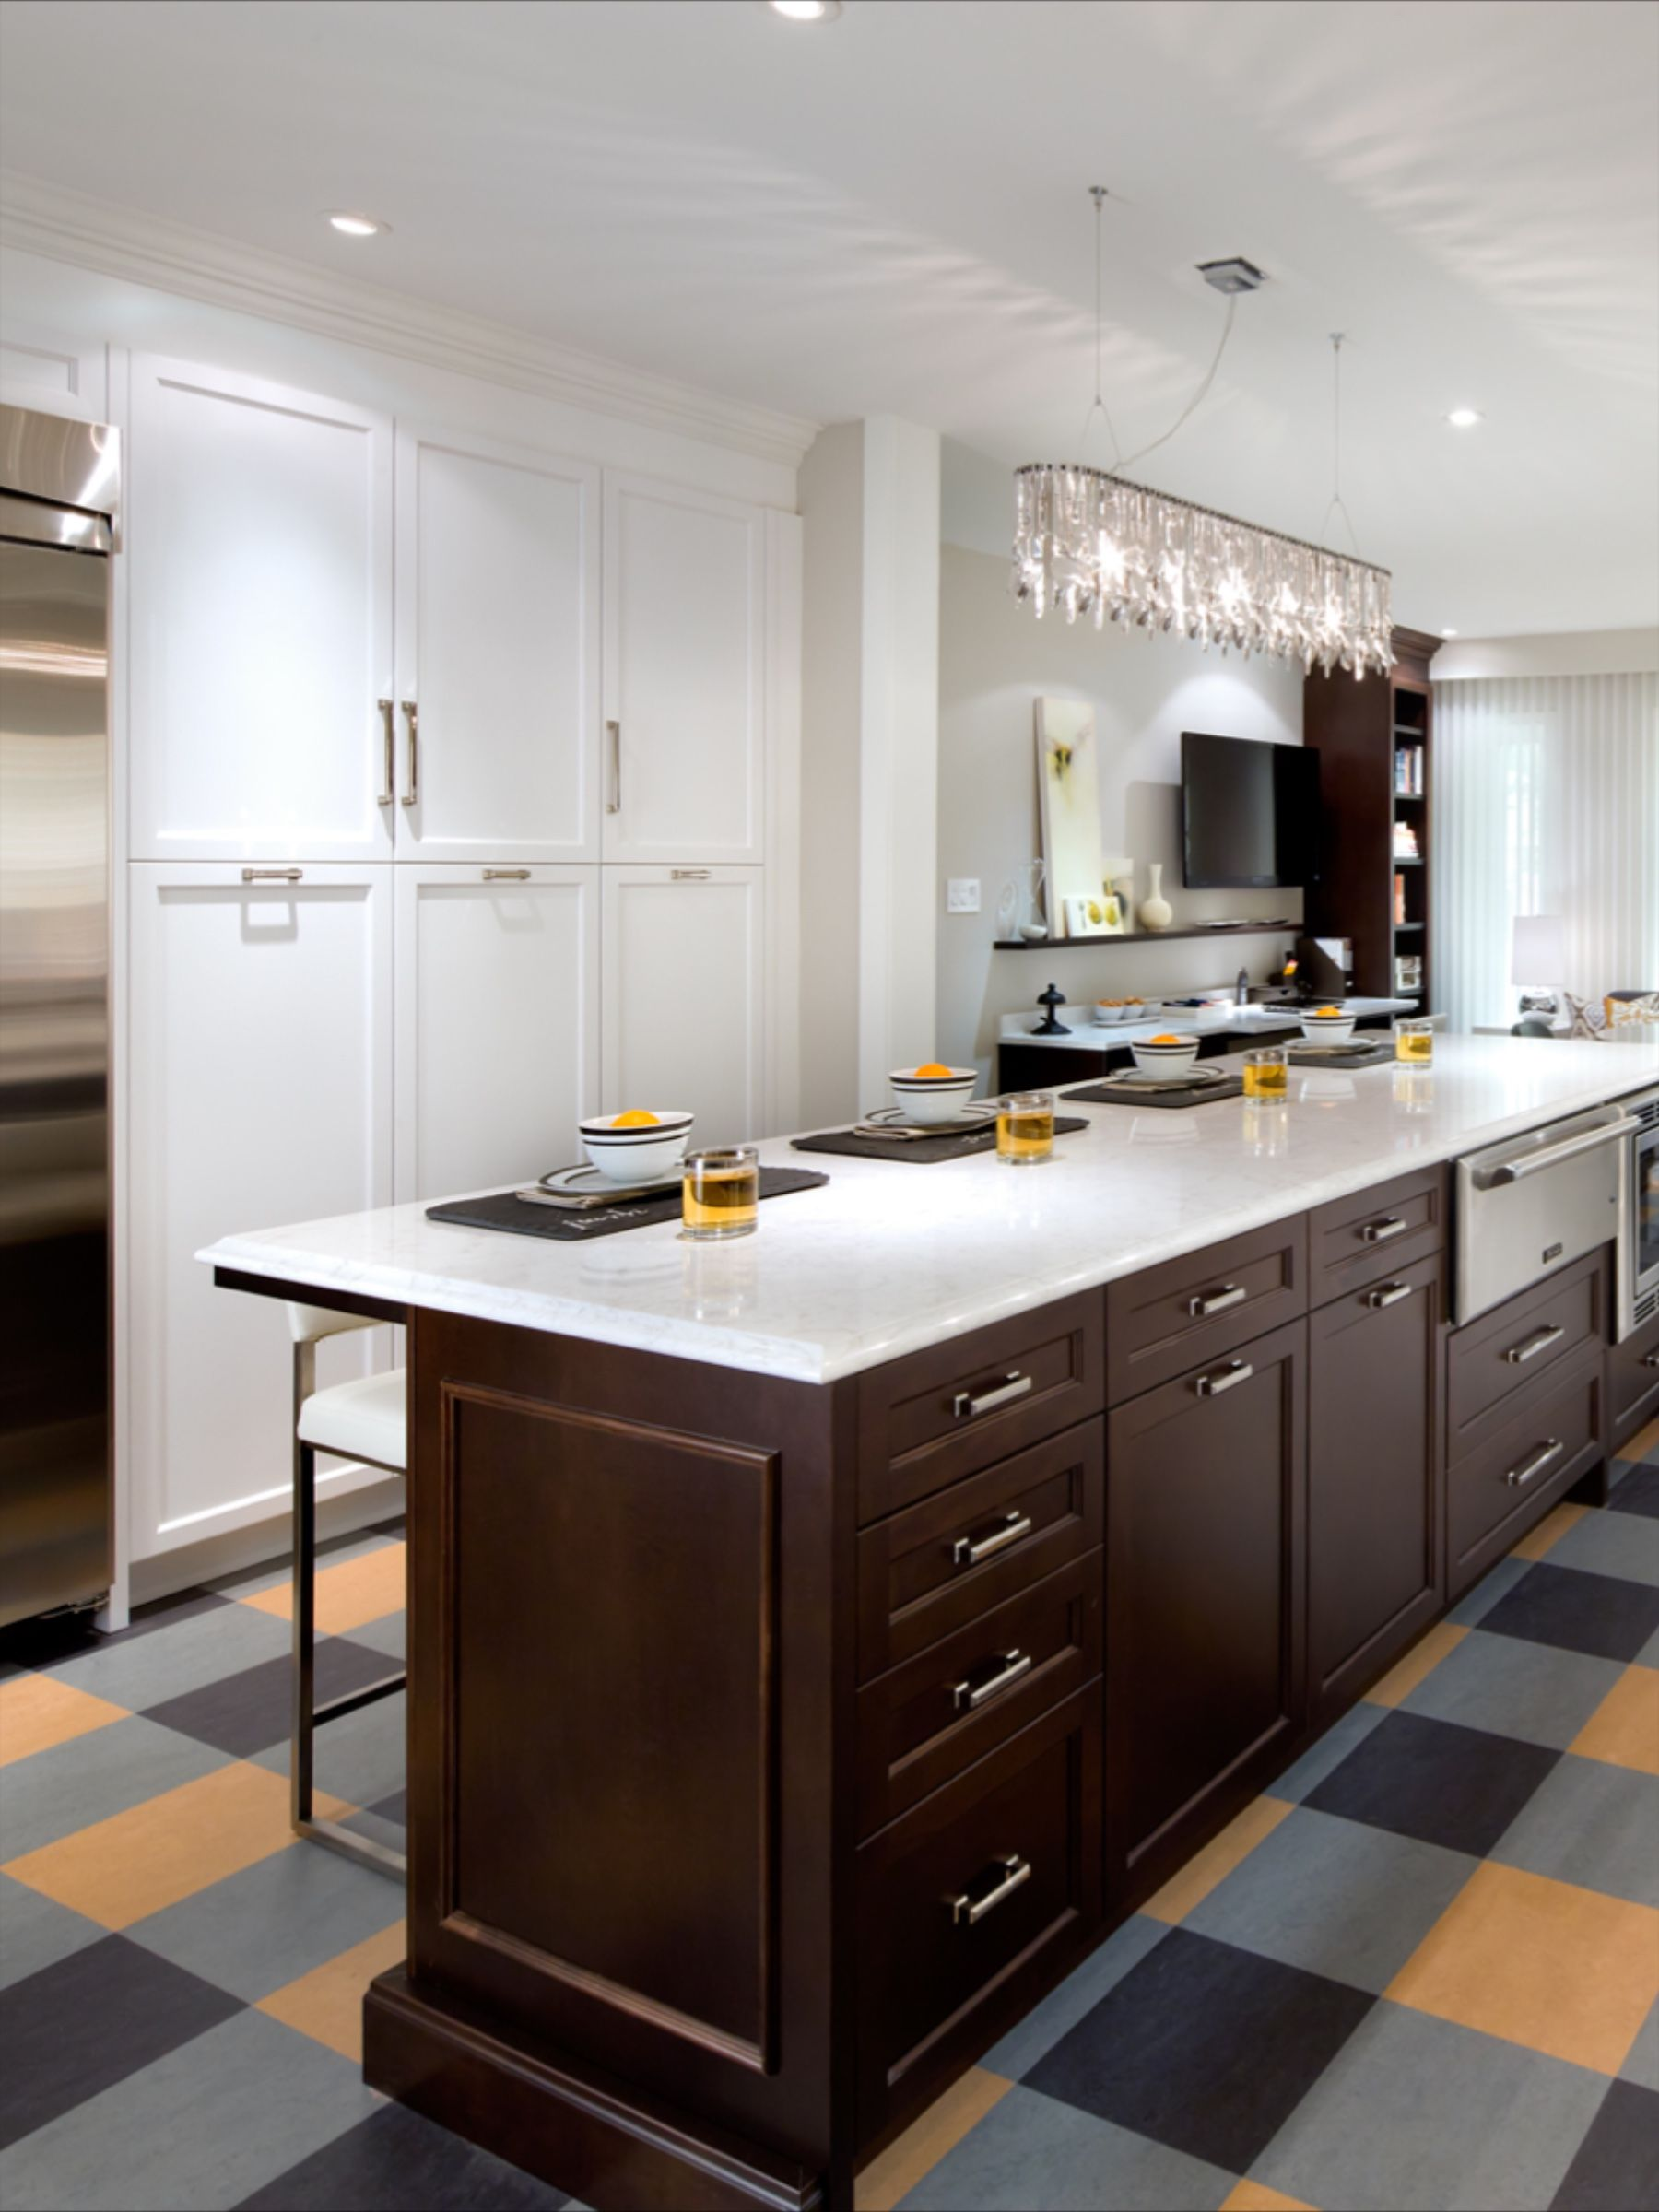 Kitchen Design By Candice Olson Candiceolson In 2020 Online Kitchen Design Kitchen Designs Layout Kitchen Design Small